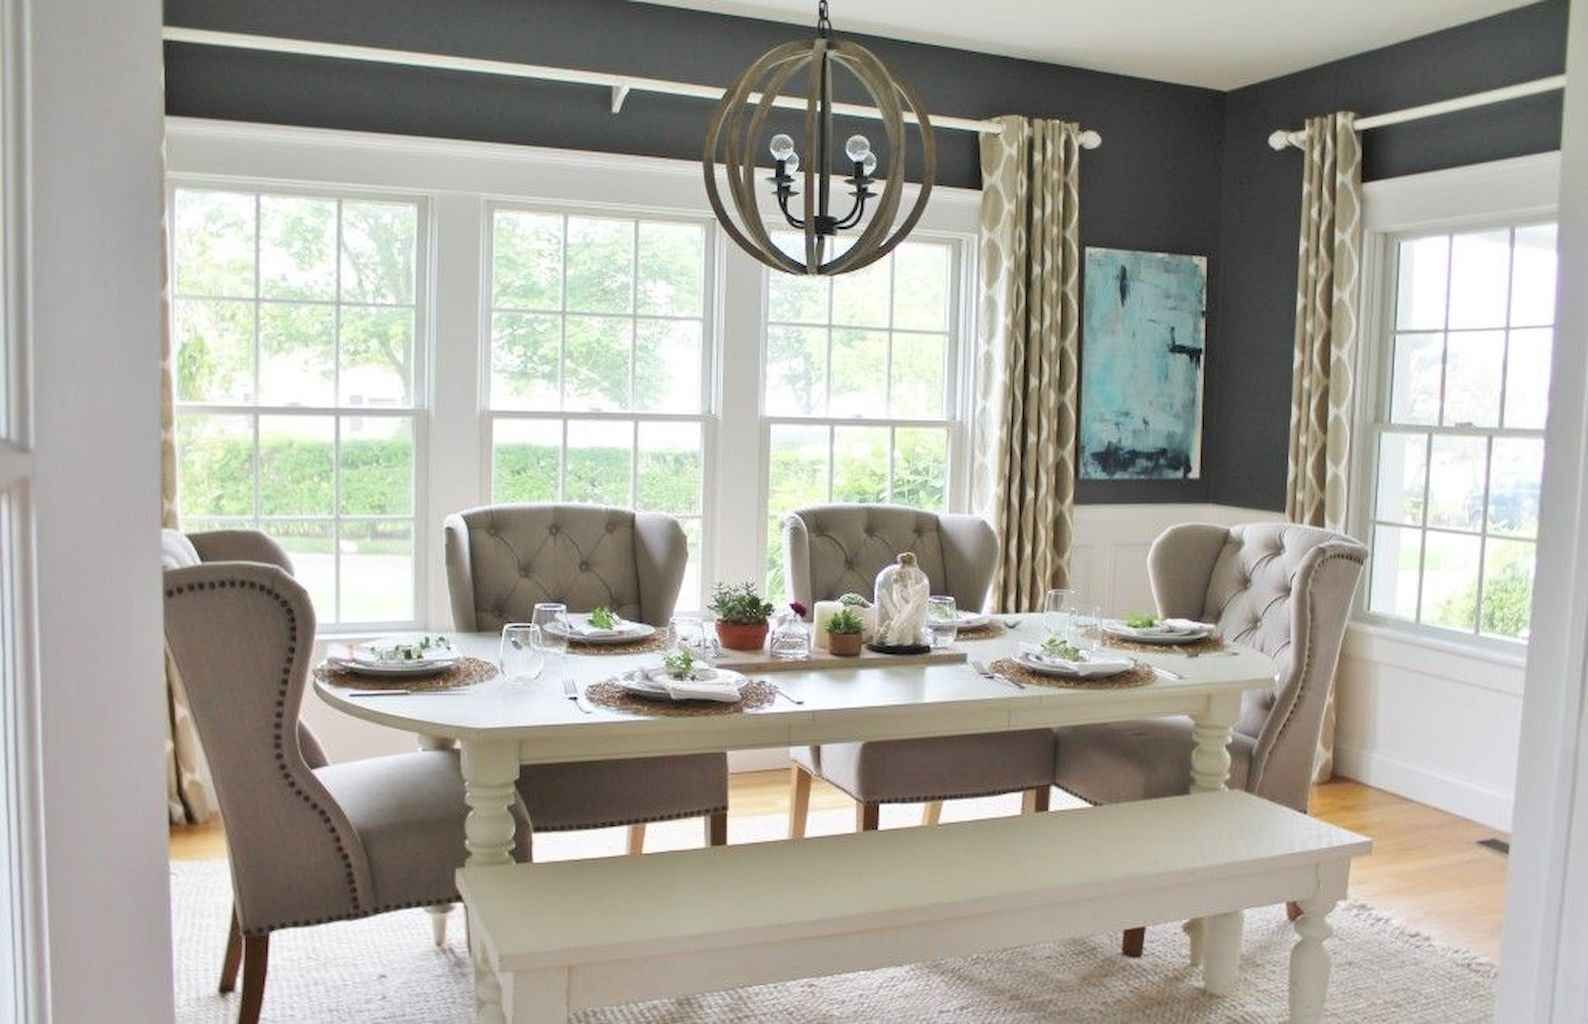 75 Farmhouse Style Dining Room Table And Decor Ideas Setyouroom Com Farmhouse Style Dining Room Modern Farmhouse Dining Room Farmhouse Dining Room